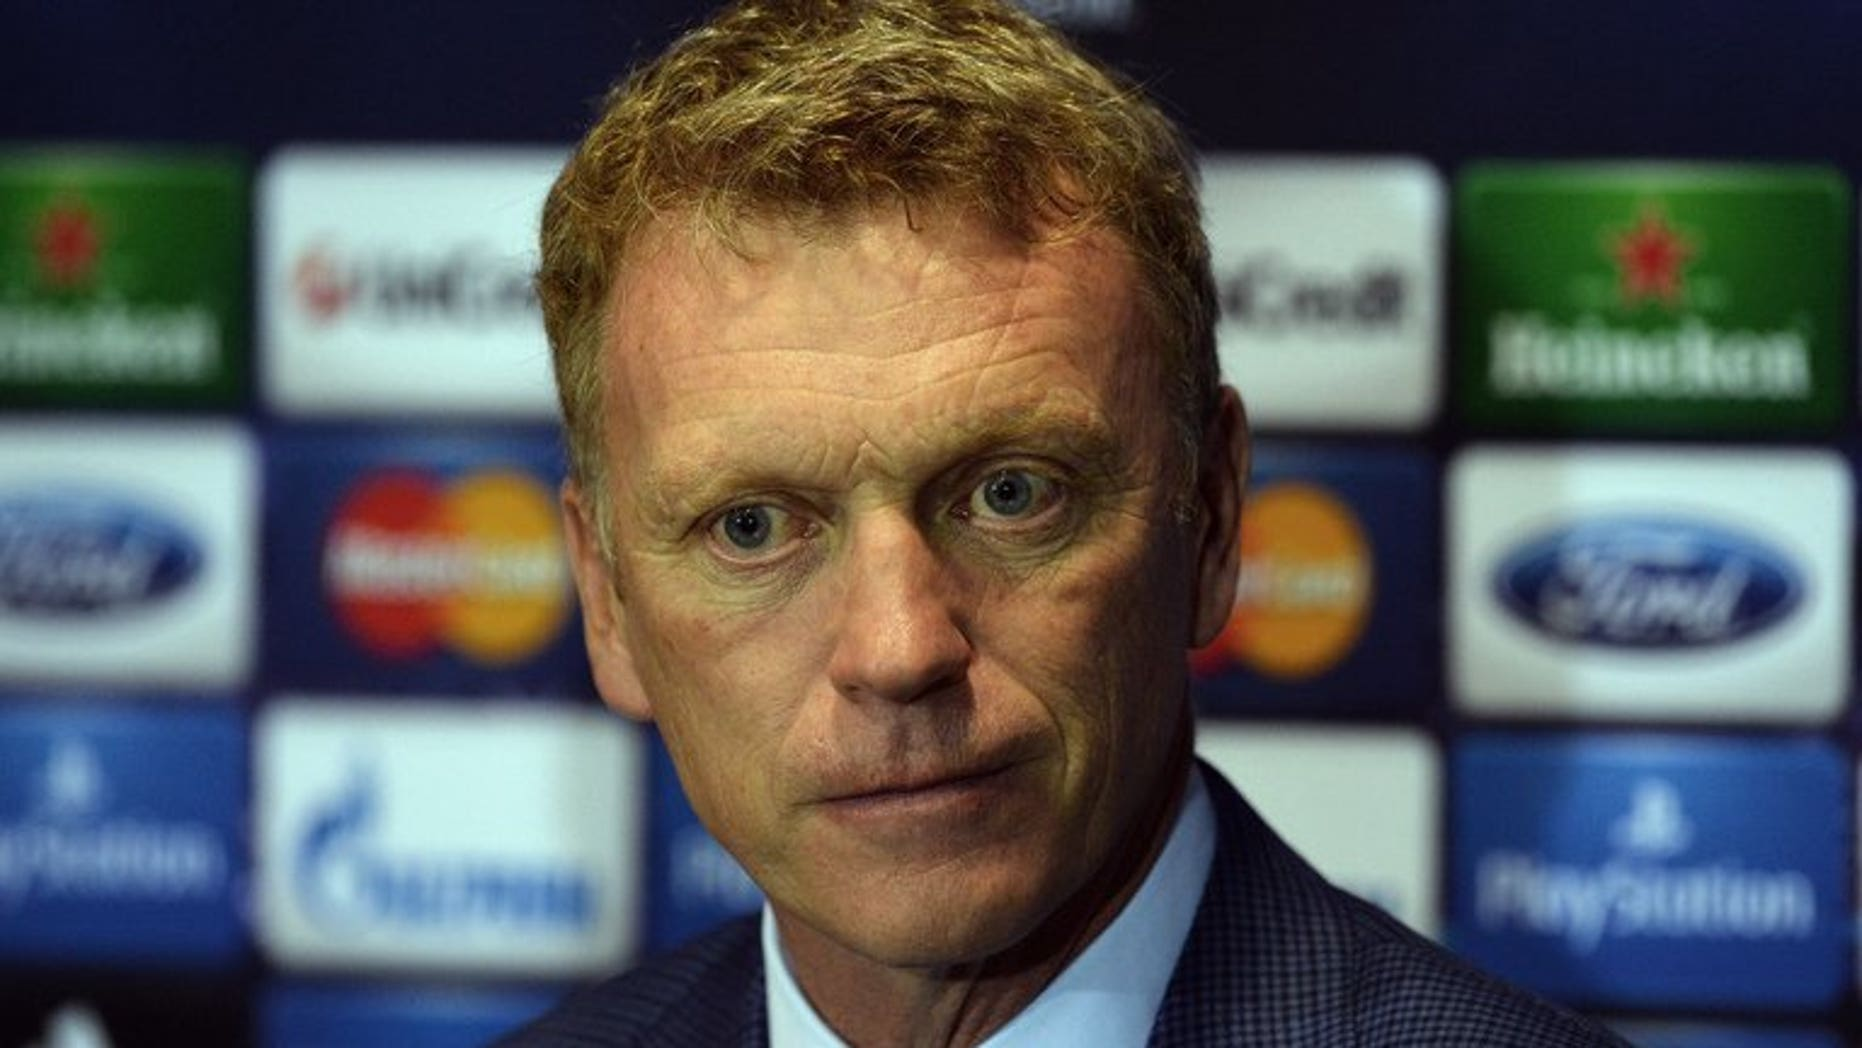 Manchester United's Scottish manager David Moyes holds a press conference at Old Trafford in Manchester, northwest England, on September 16, 2013, ahead of the UEFA Champions League Group A football match between Manchester United and Bayer Leverkusen on September 17.